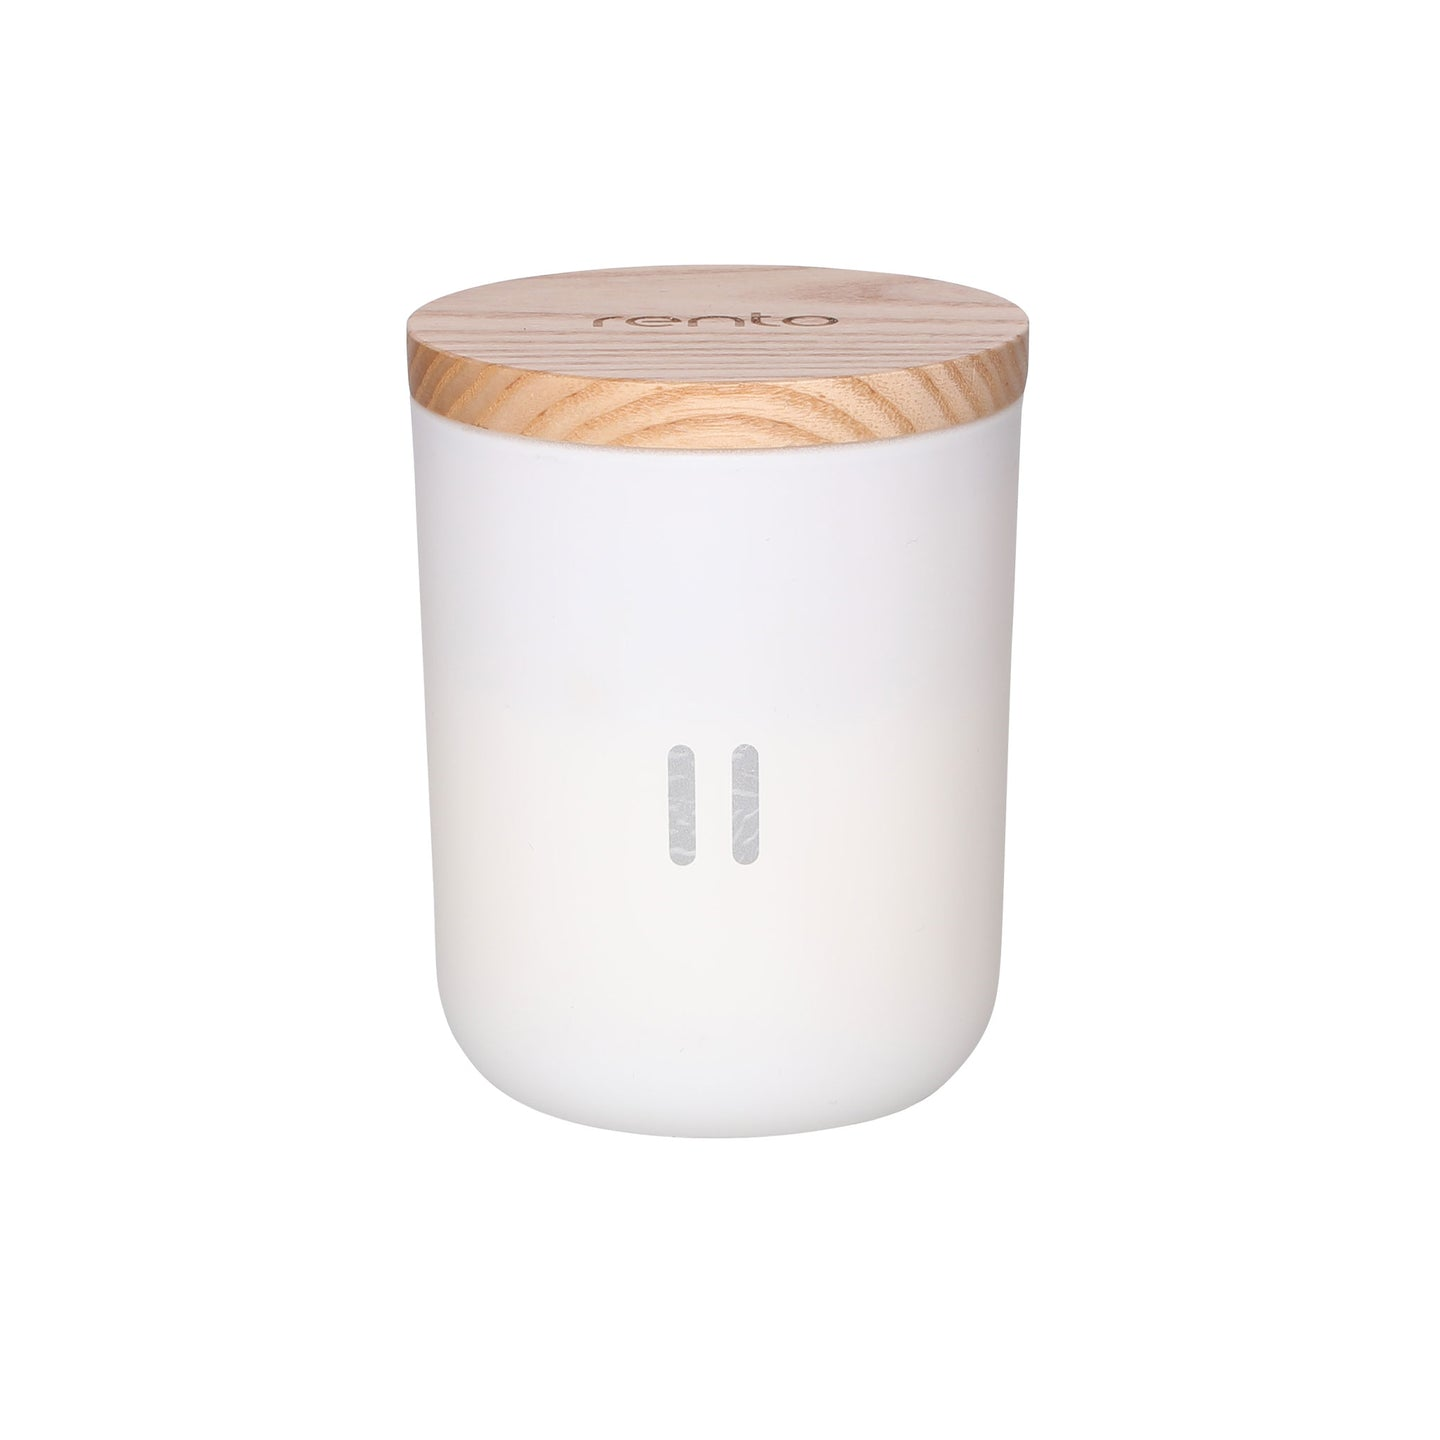 Rento Birch Scented Candle  Scented Candle Finnmark Sauna